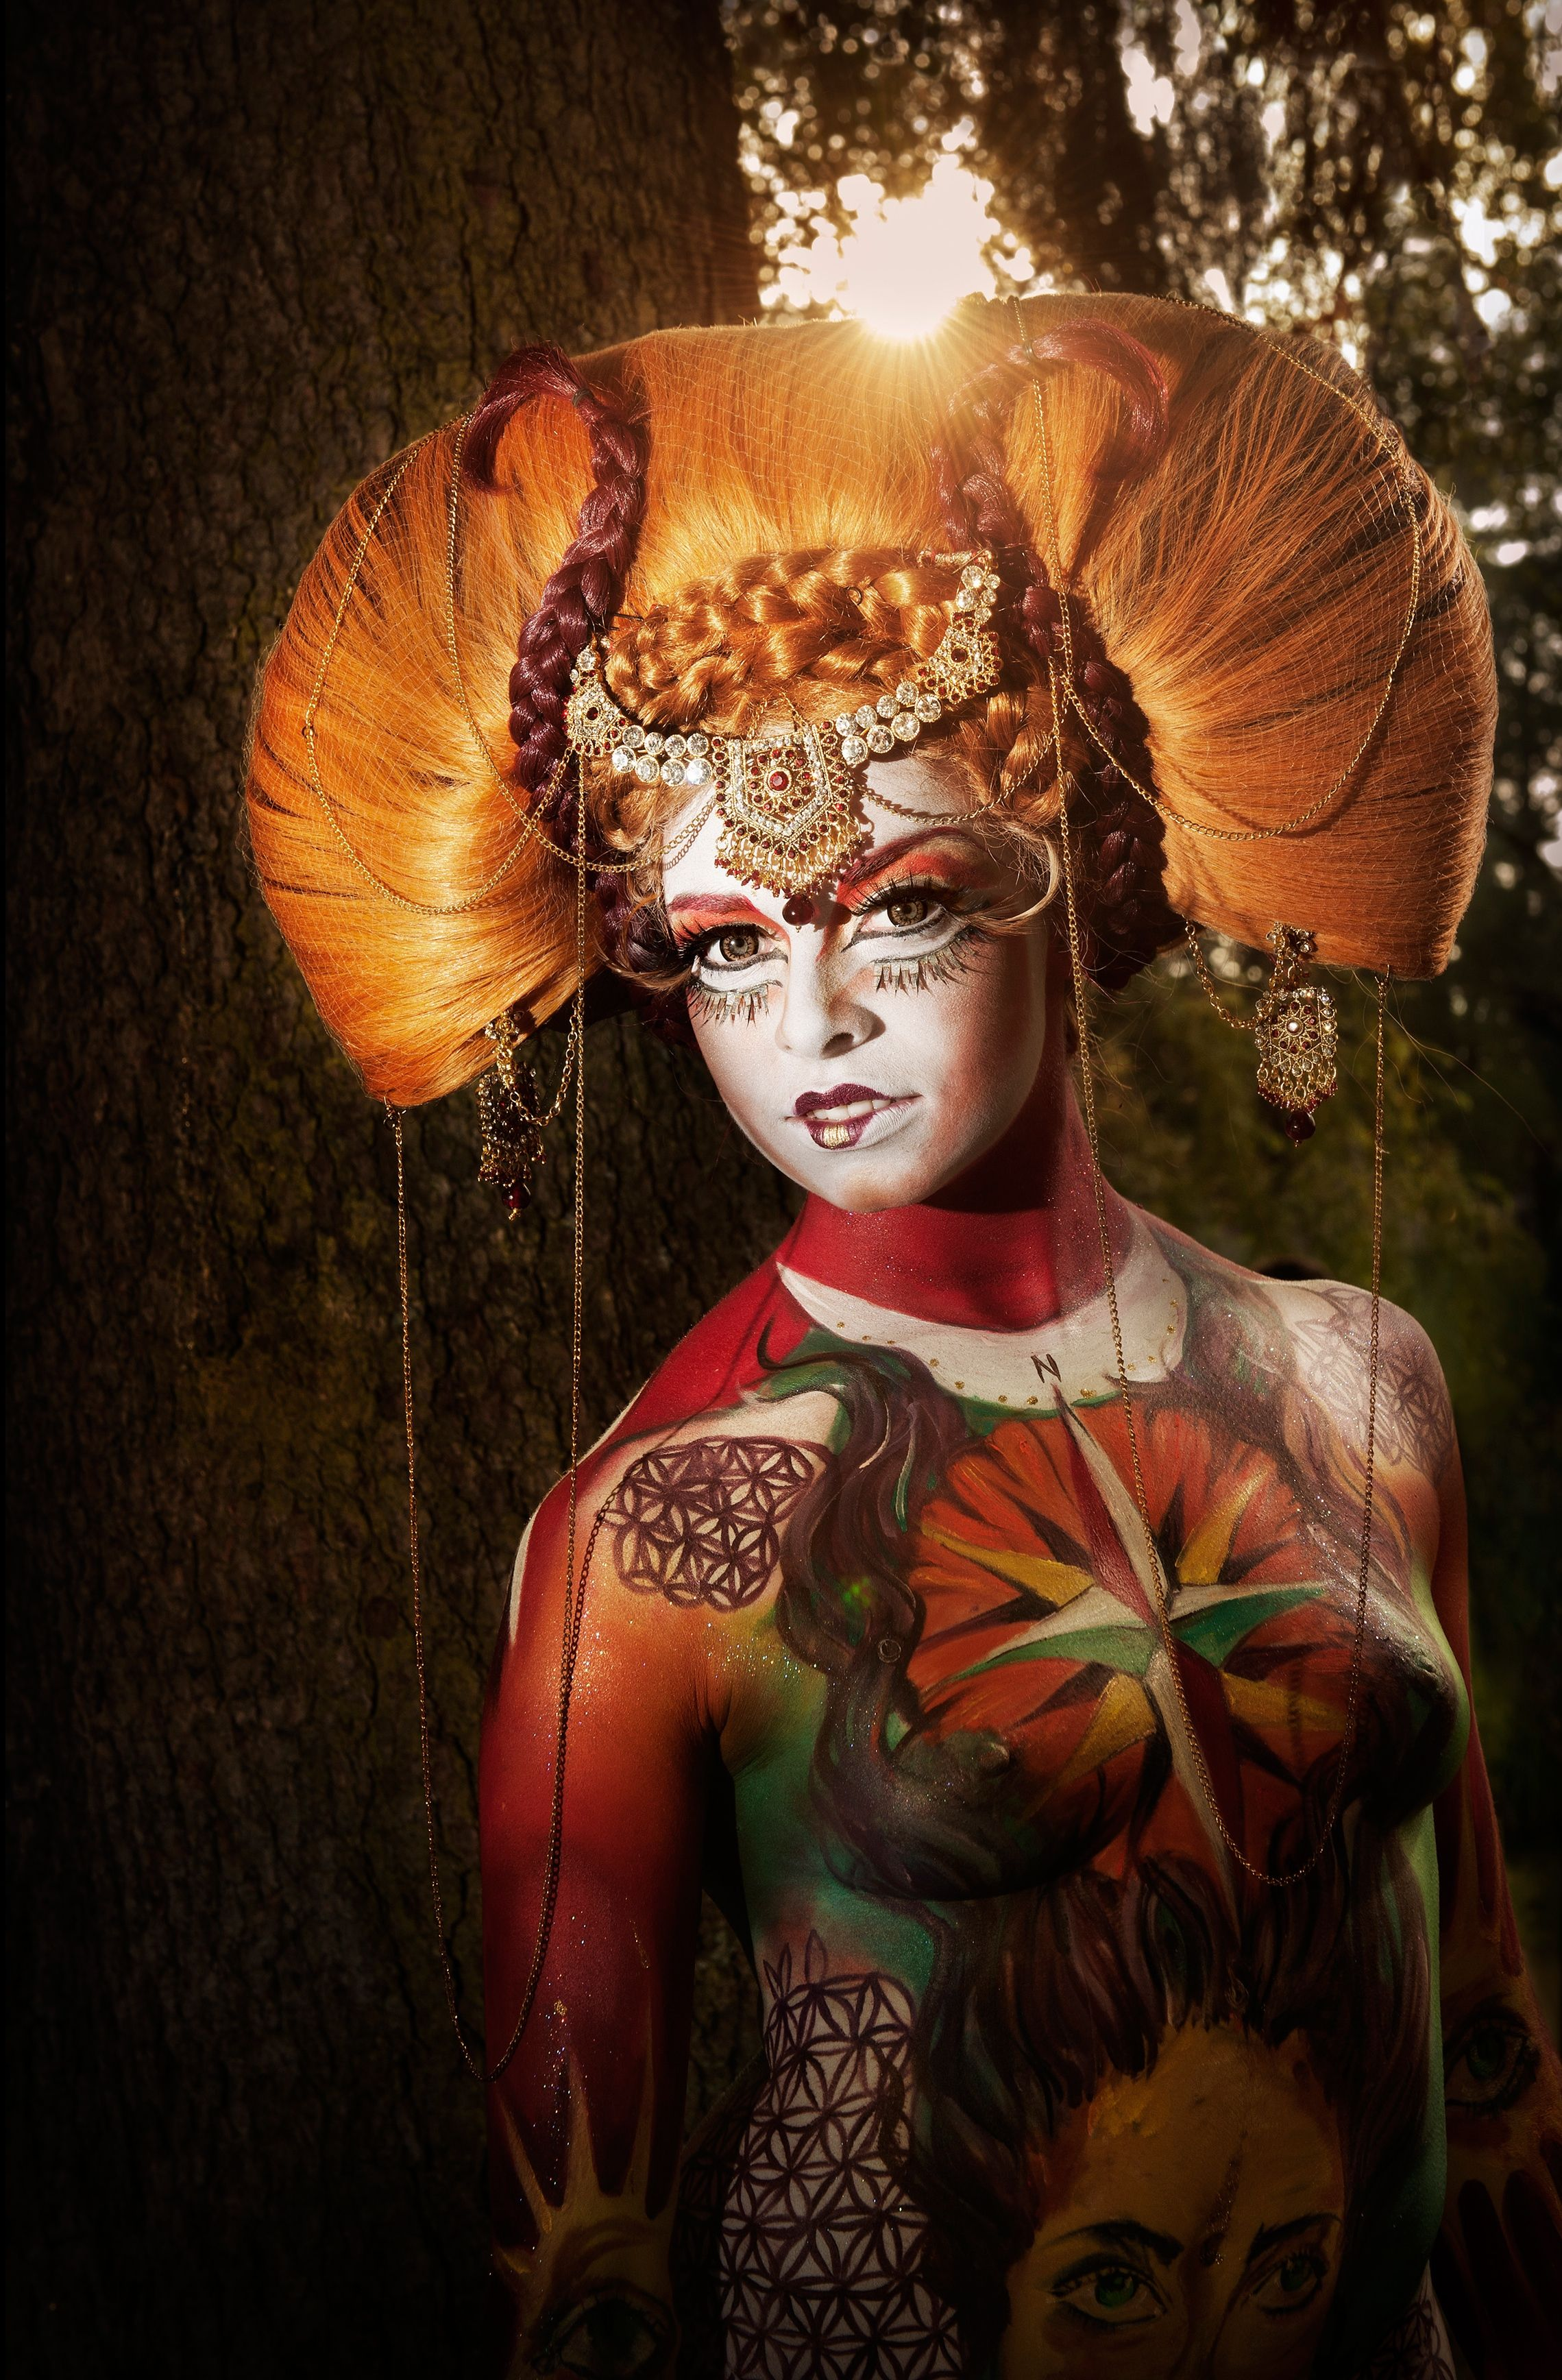 World Bodypainting Festival 2020 In Klagenfurt Am Worthersee Austria With Images World Bodypainting Festival Body Art Painting Bodypainting